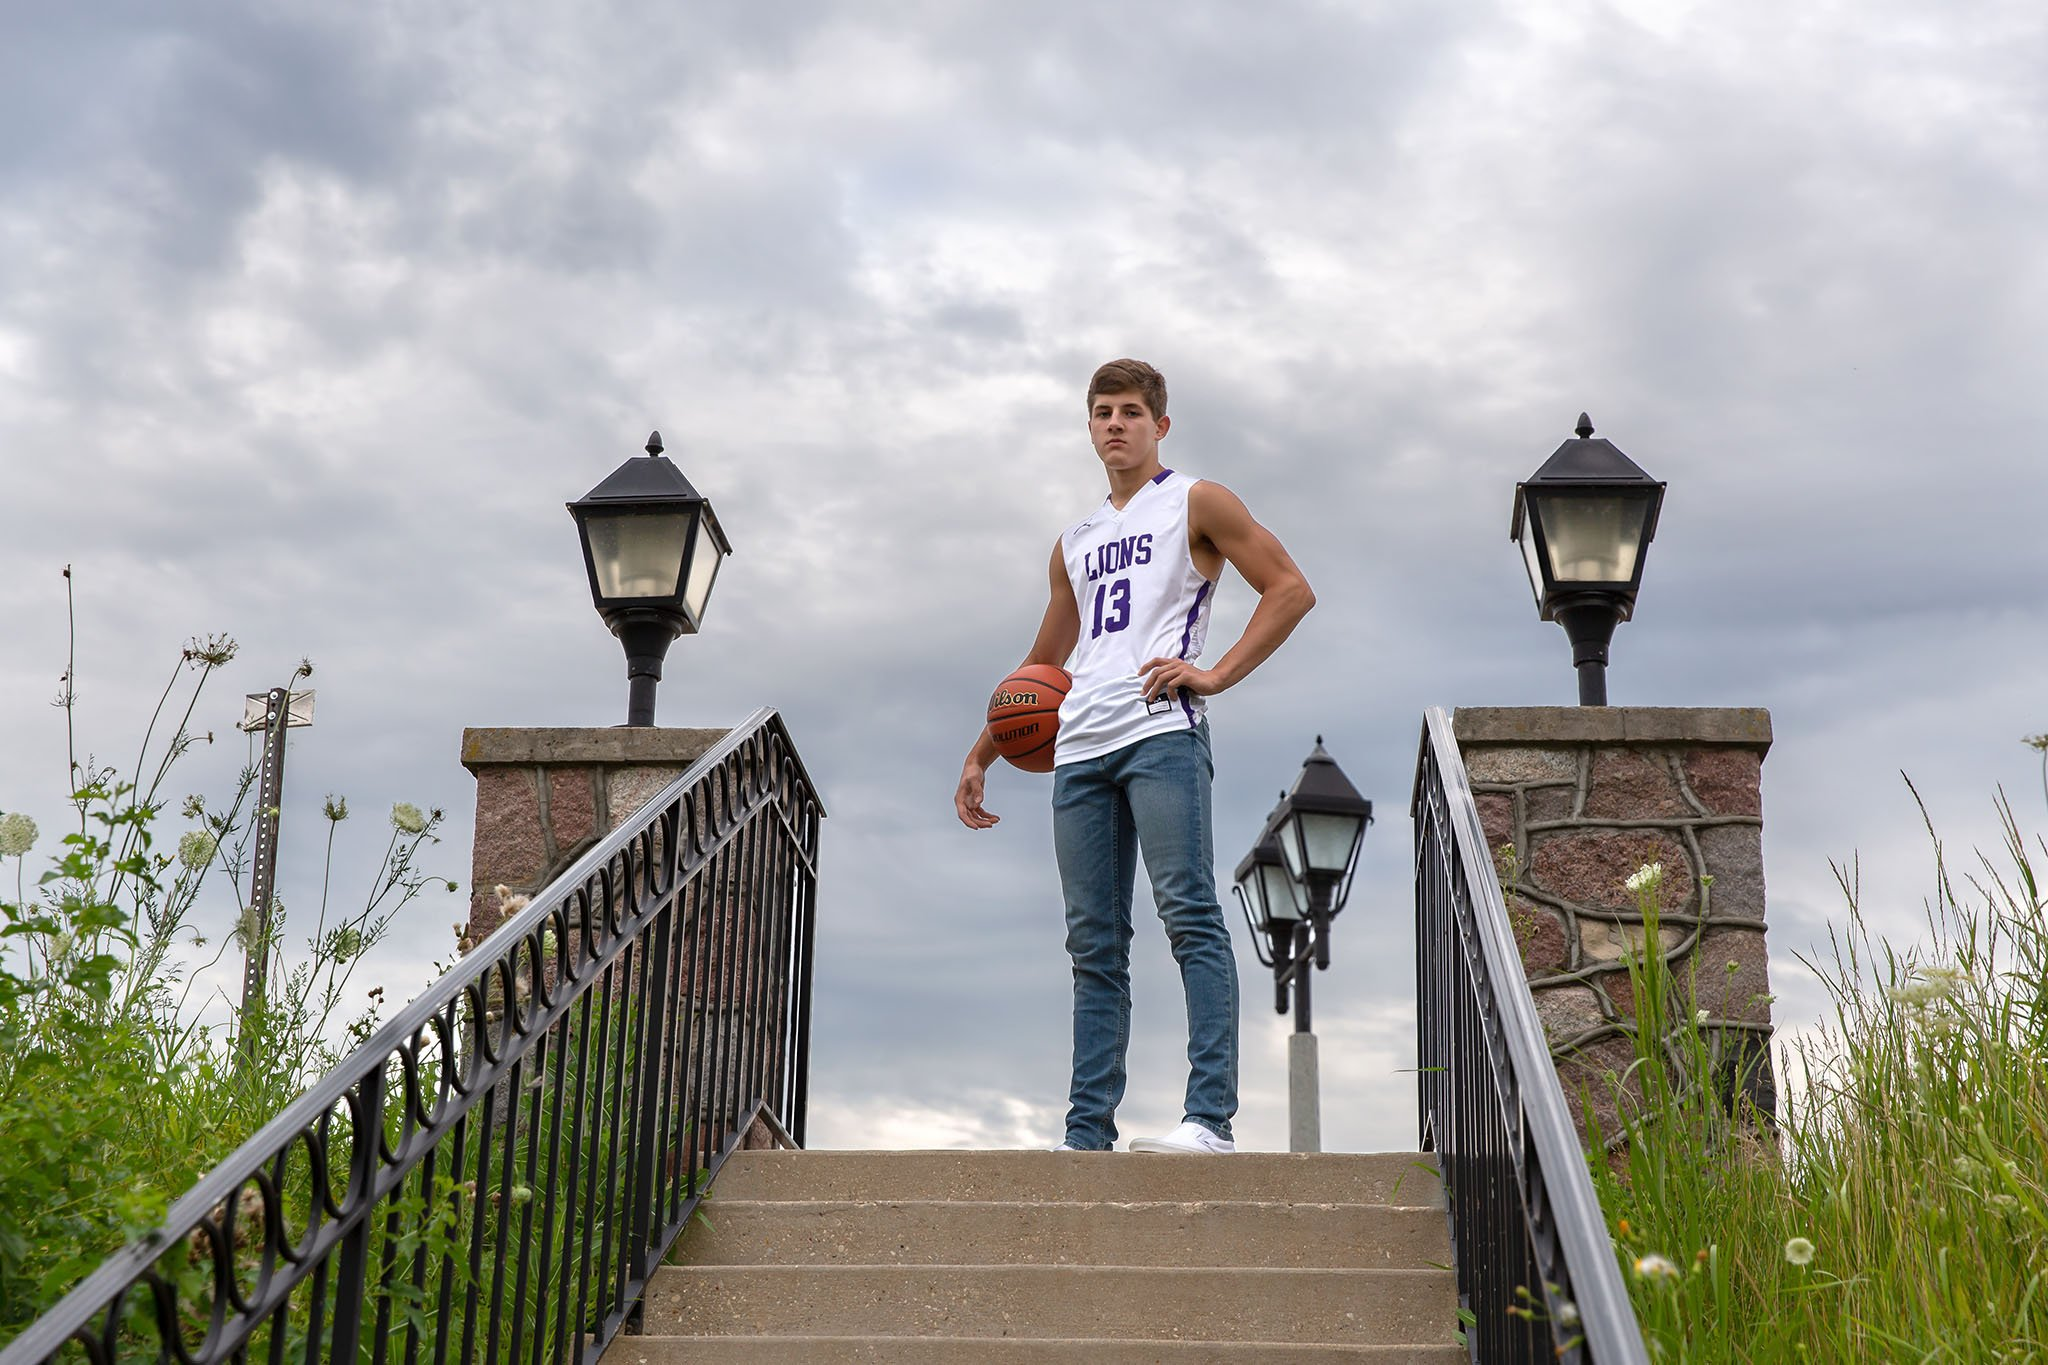 High School Senior boy in basketball uniform looking at camera in Delafield, Wisconsin at Cushing Park